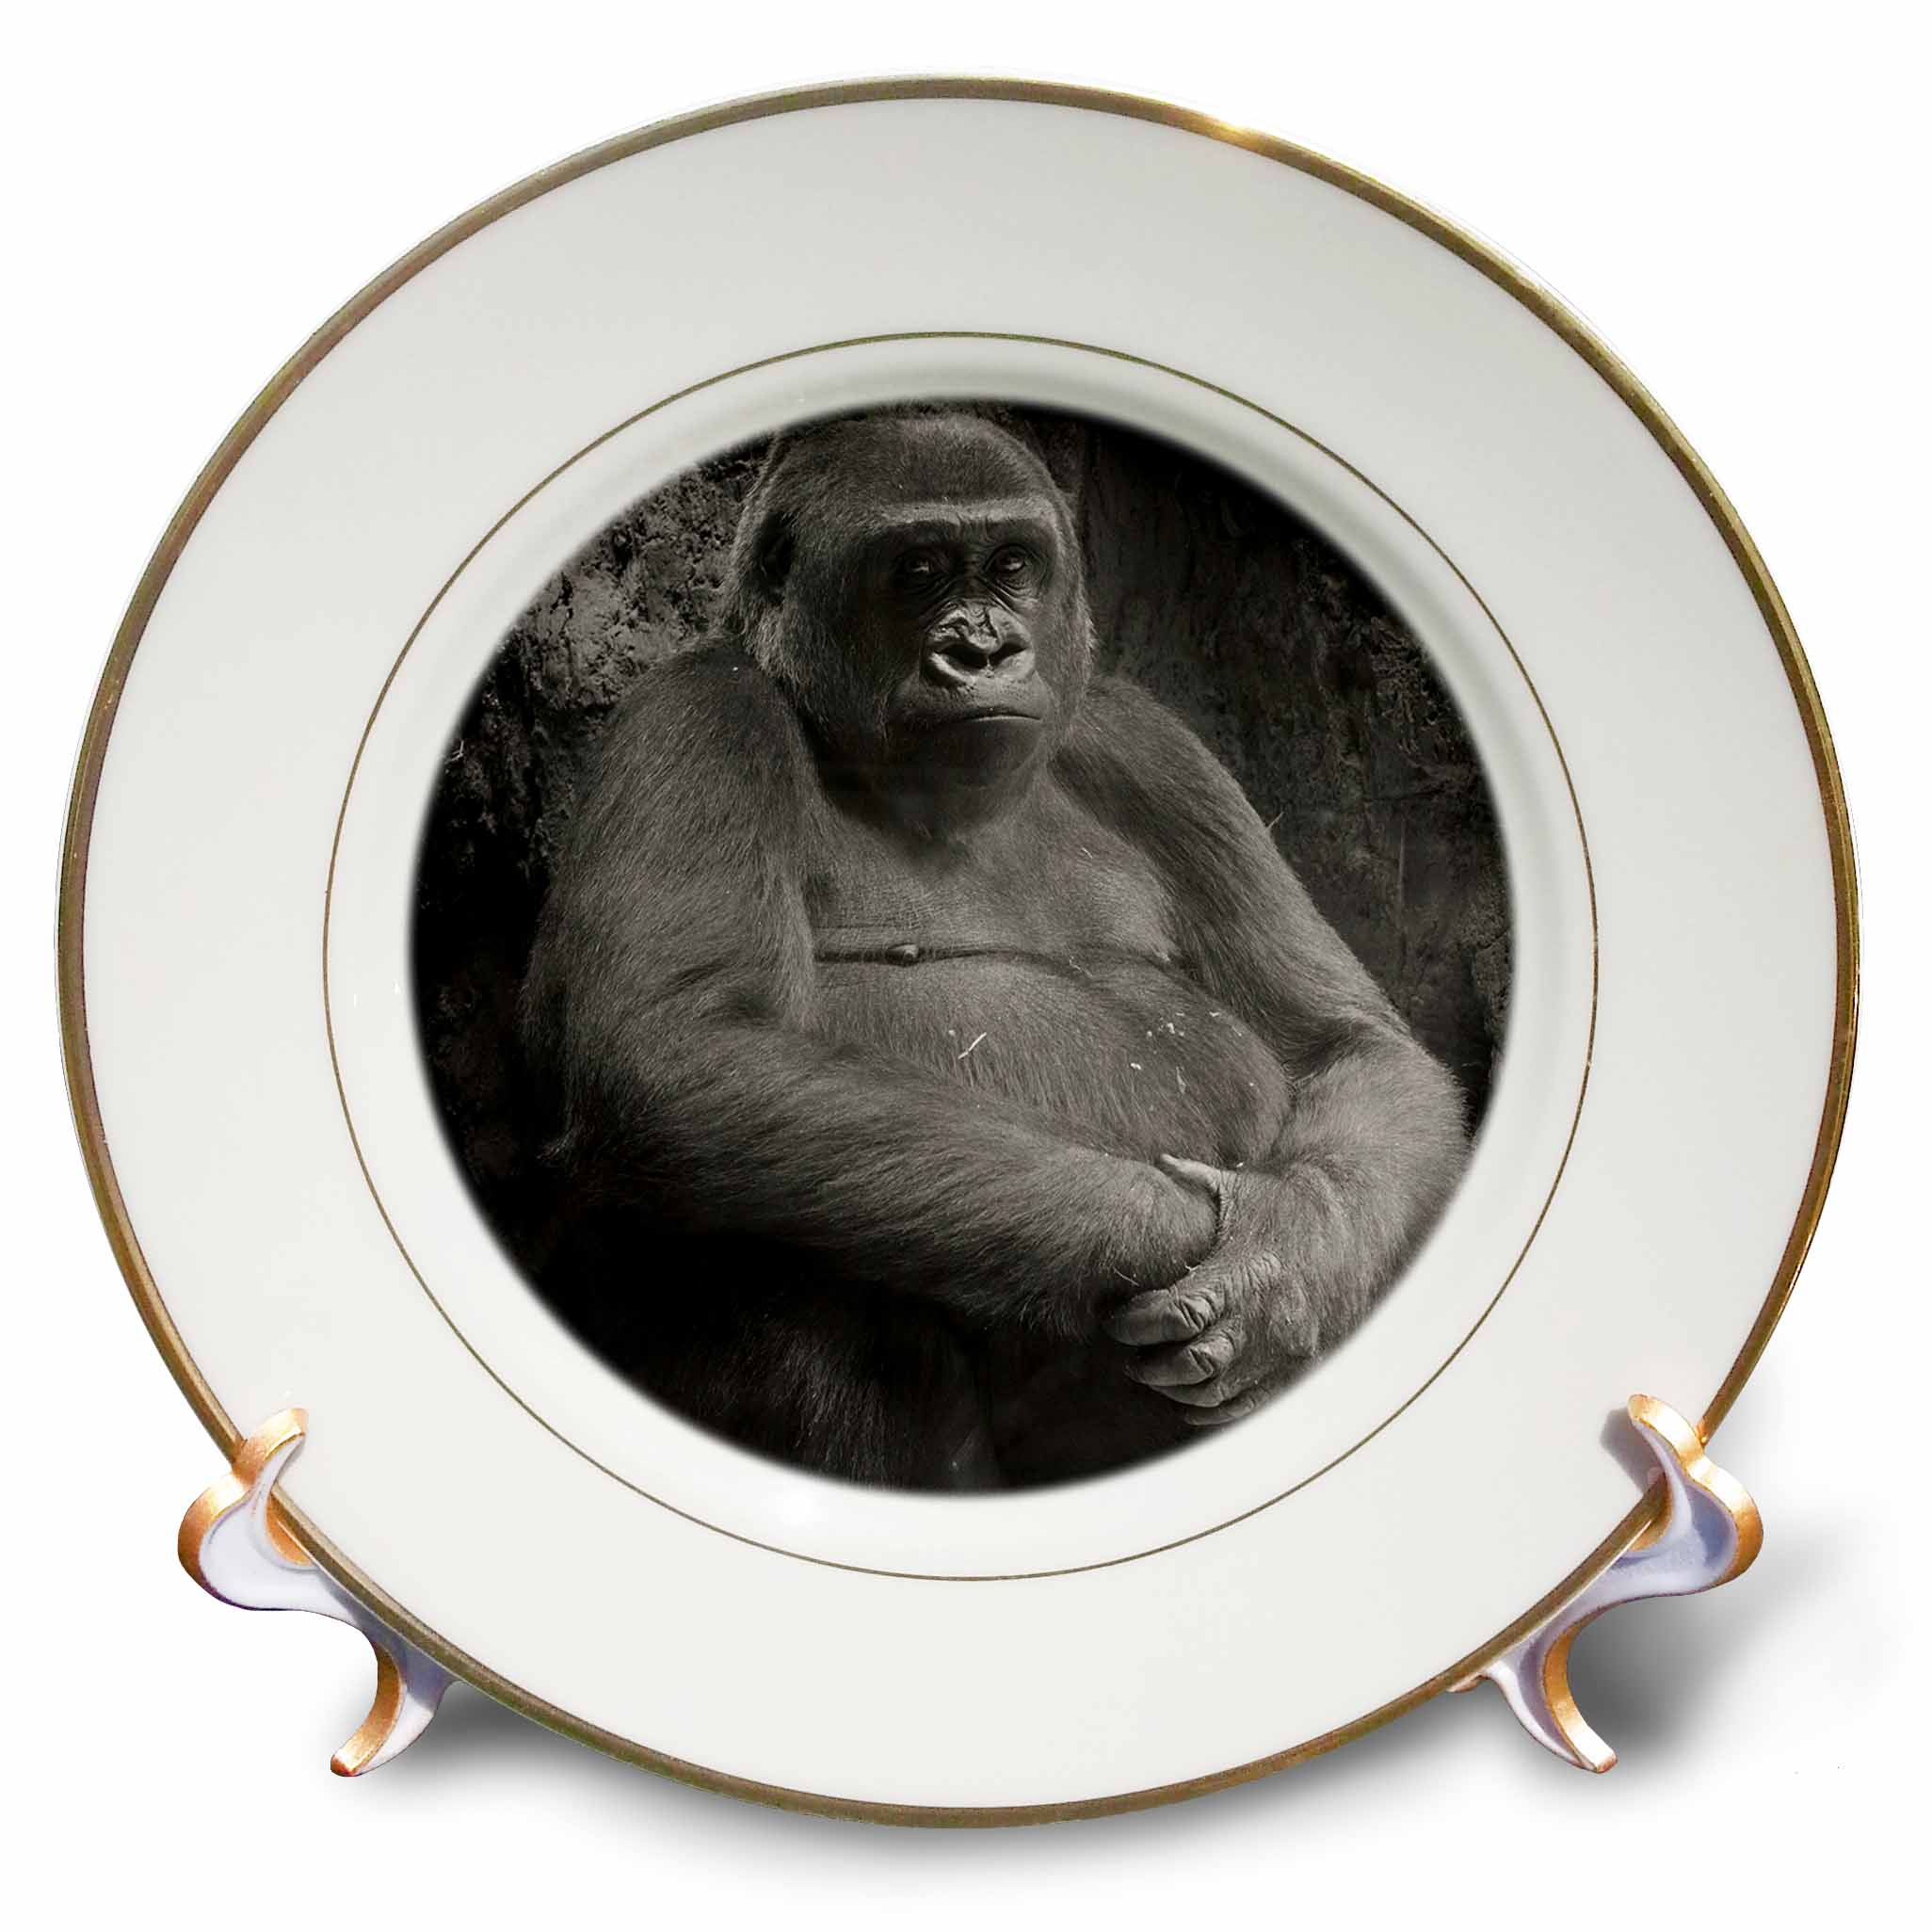 3dRose Black and white picture of a gorilla, Porcelain Plate, 8-inch